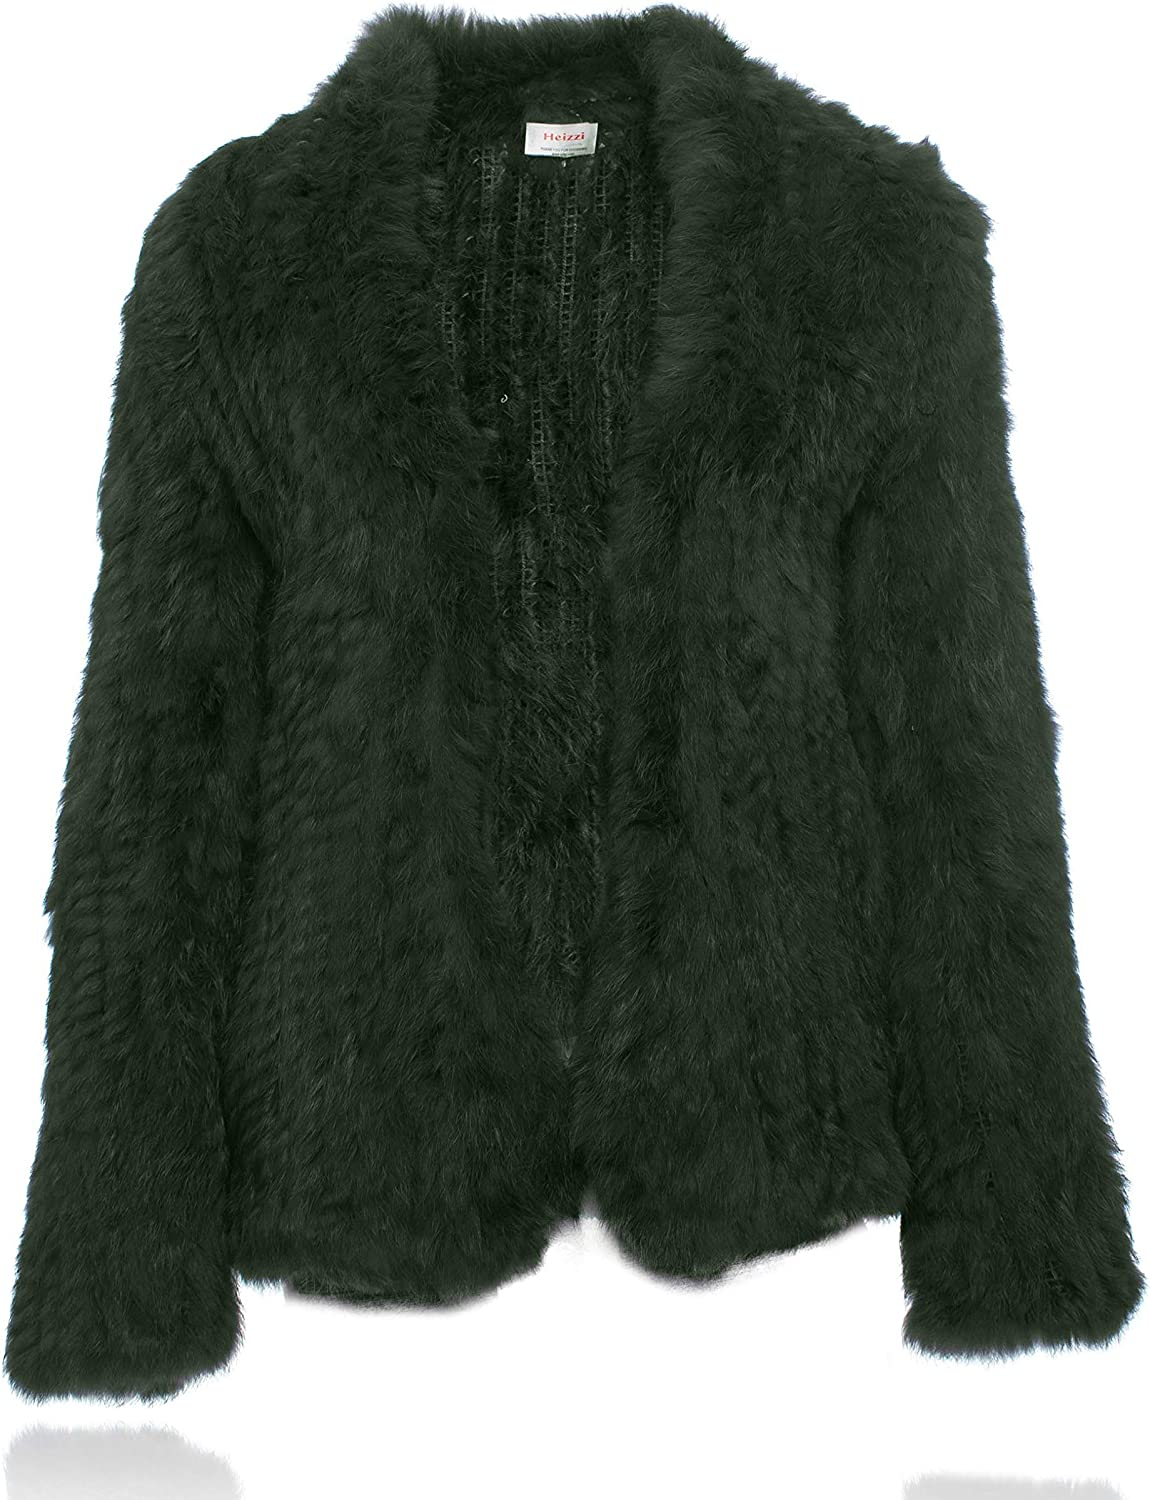 HEIZZI Natural Fur Coat Knitted Rabbit Fur Jacket Long Sleeve